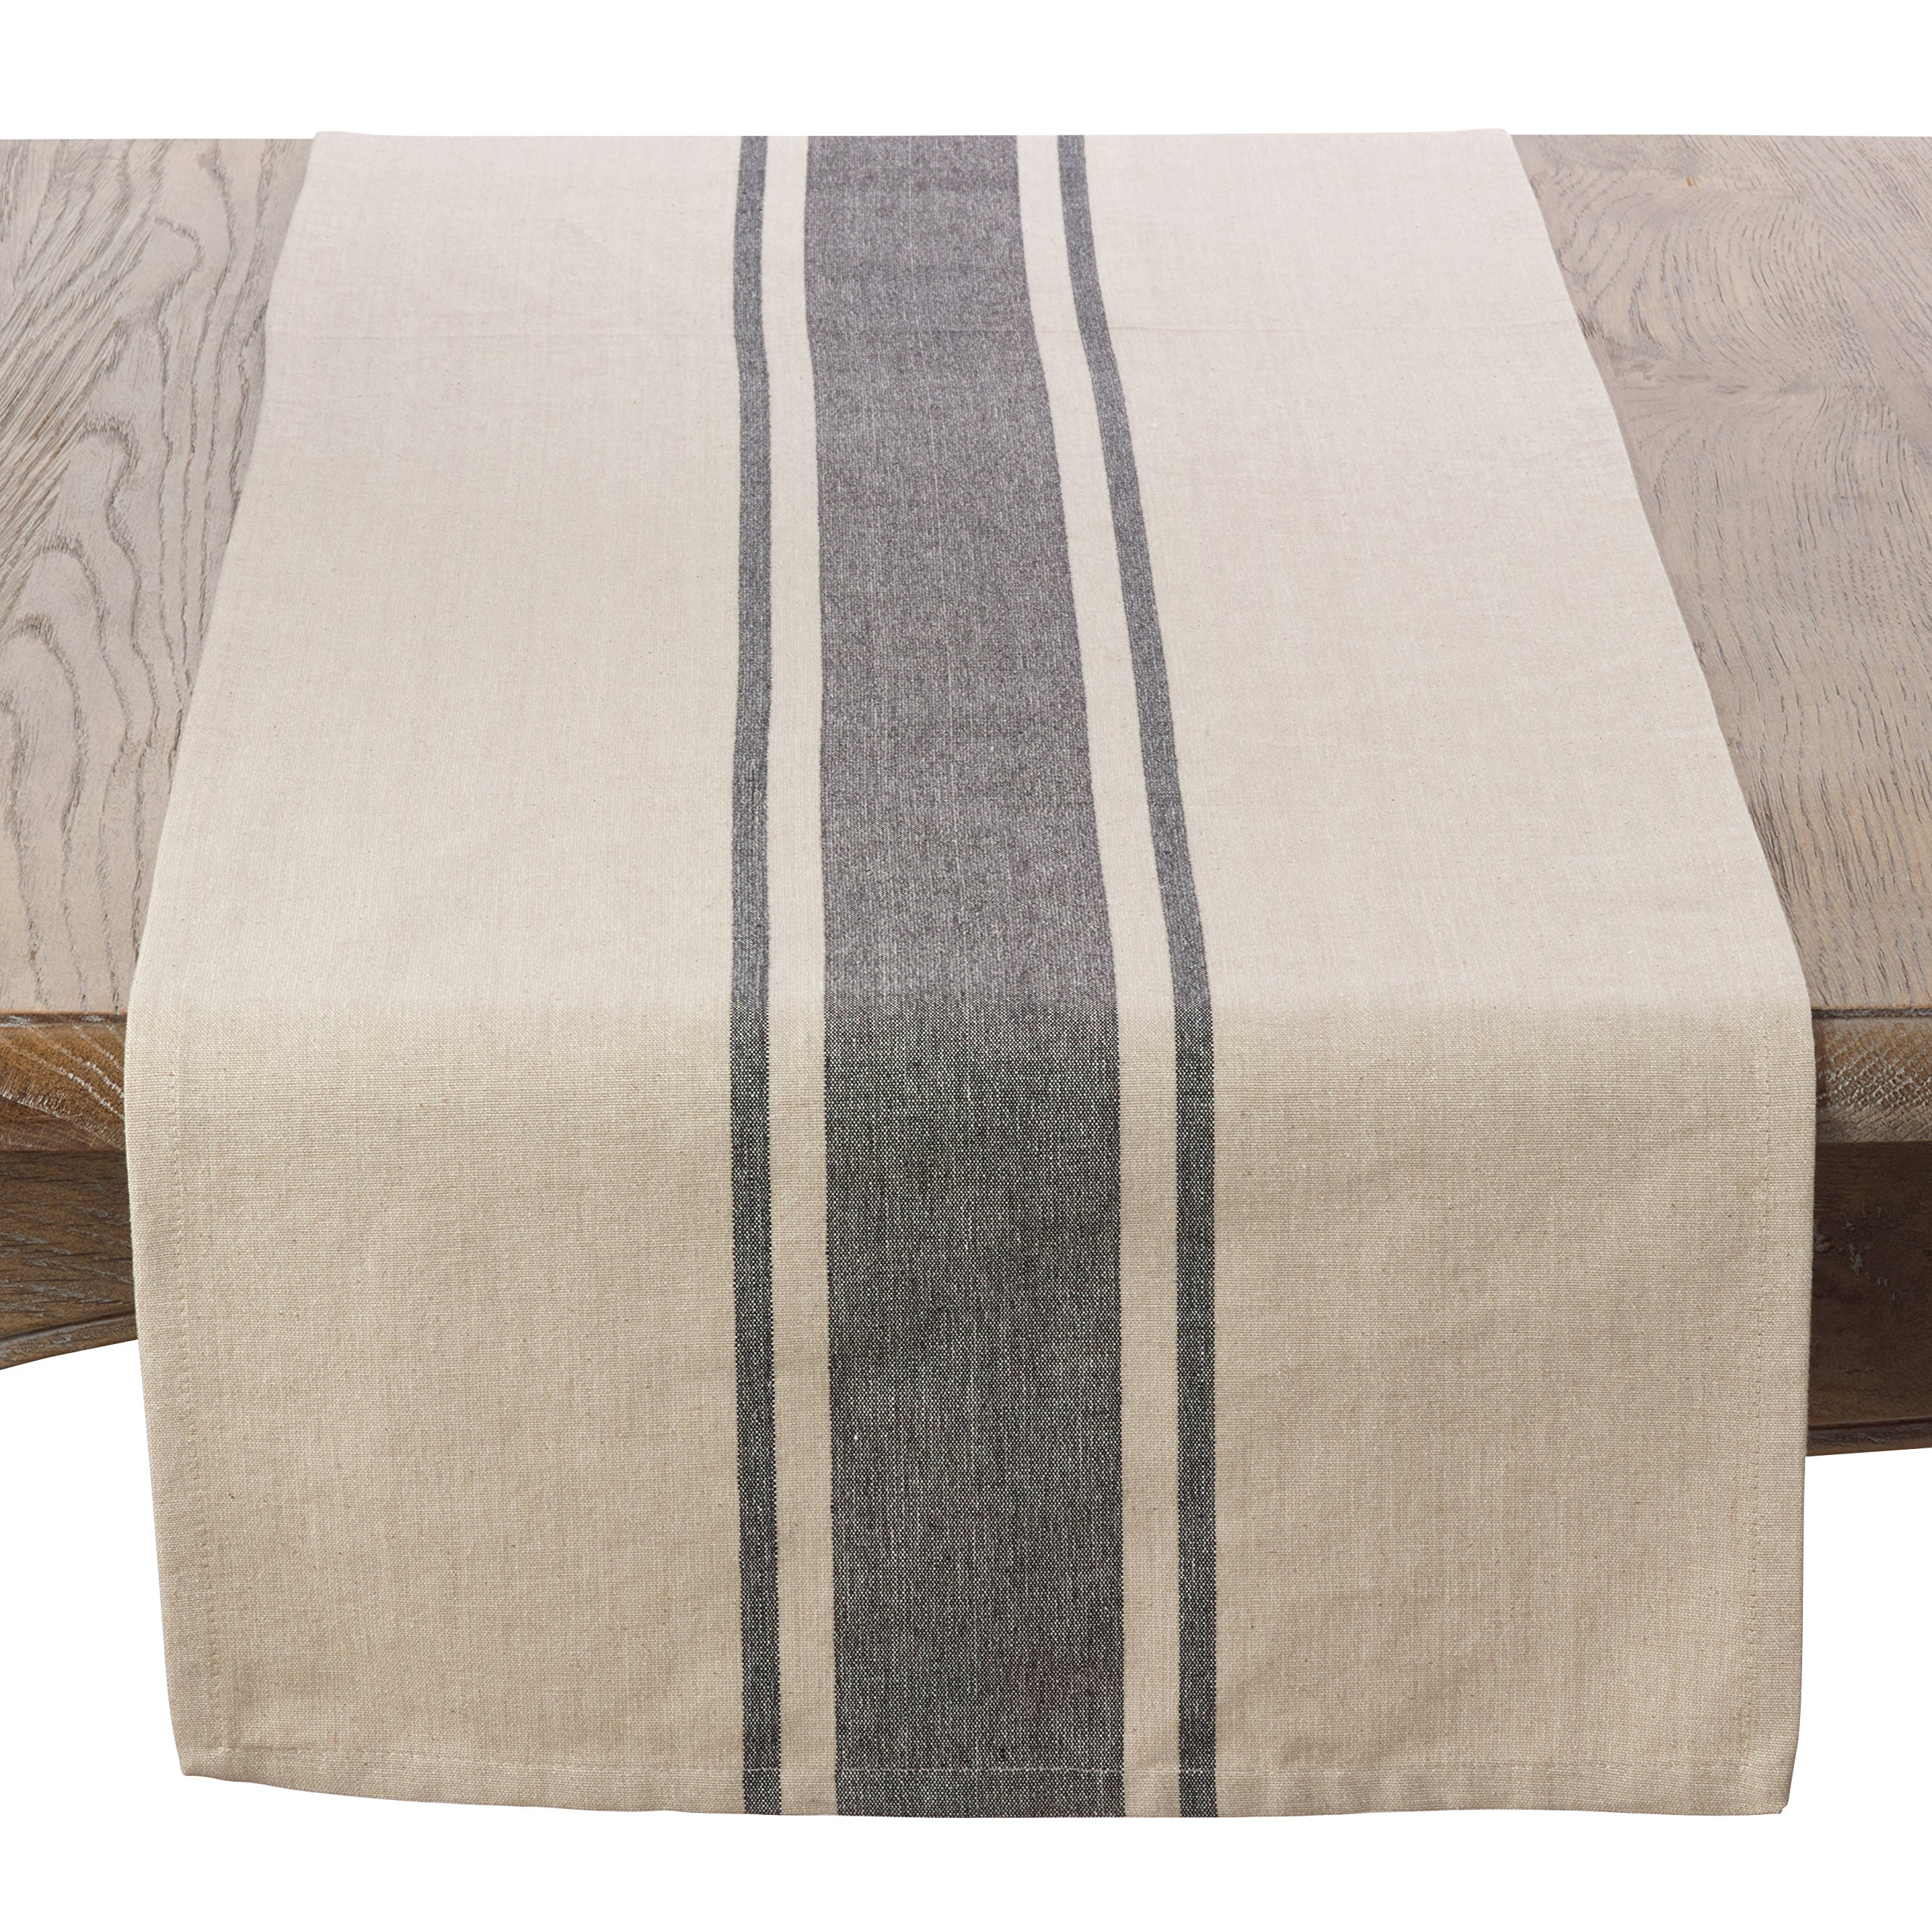 SARO LIFESTYLE 3011.N1672B Classic Banded Stripe Pattern Cotton Table Runner,Natural,16'' x 72''